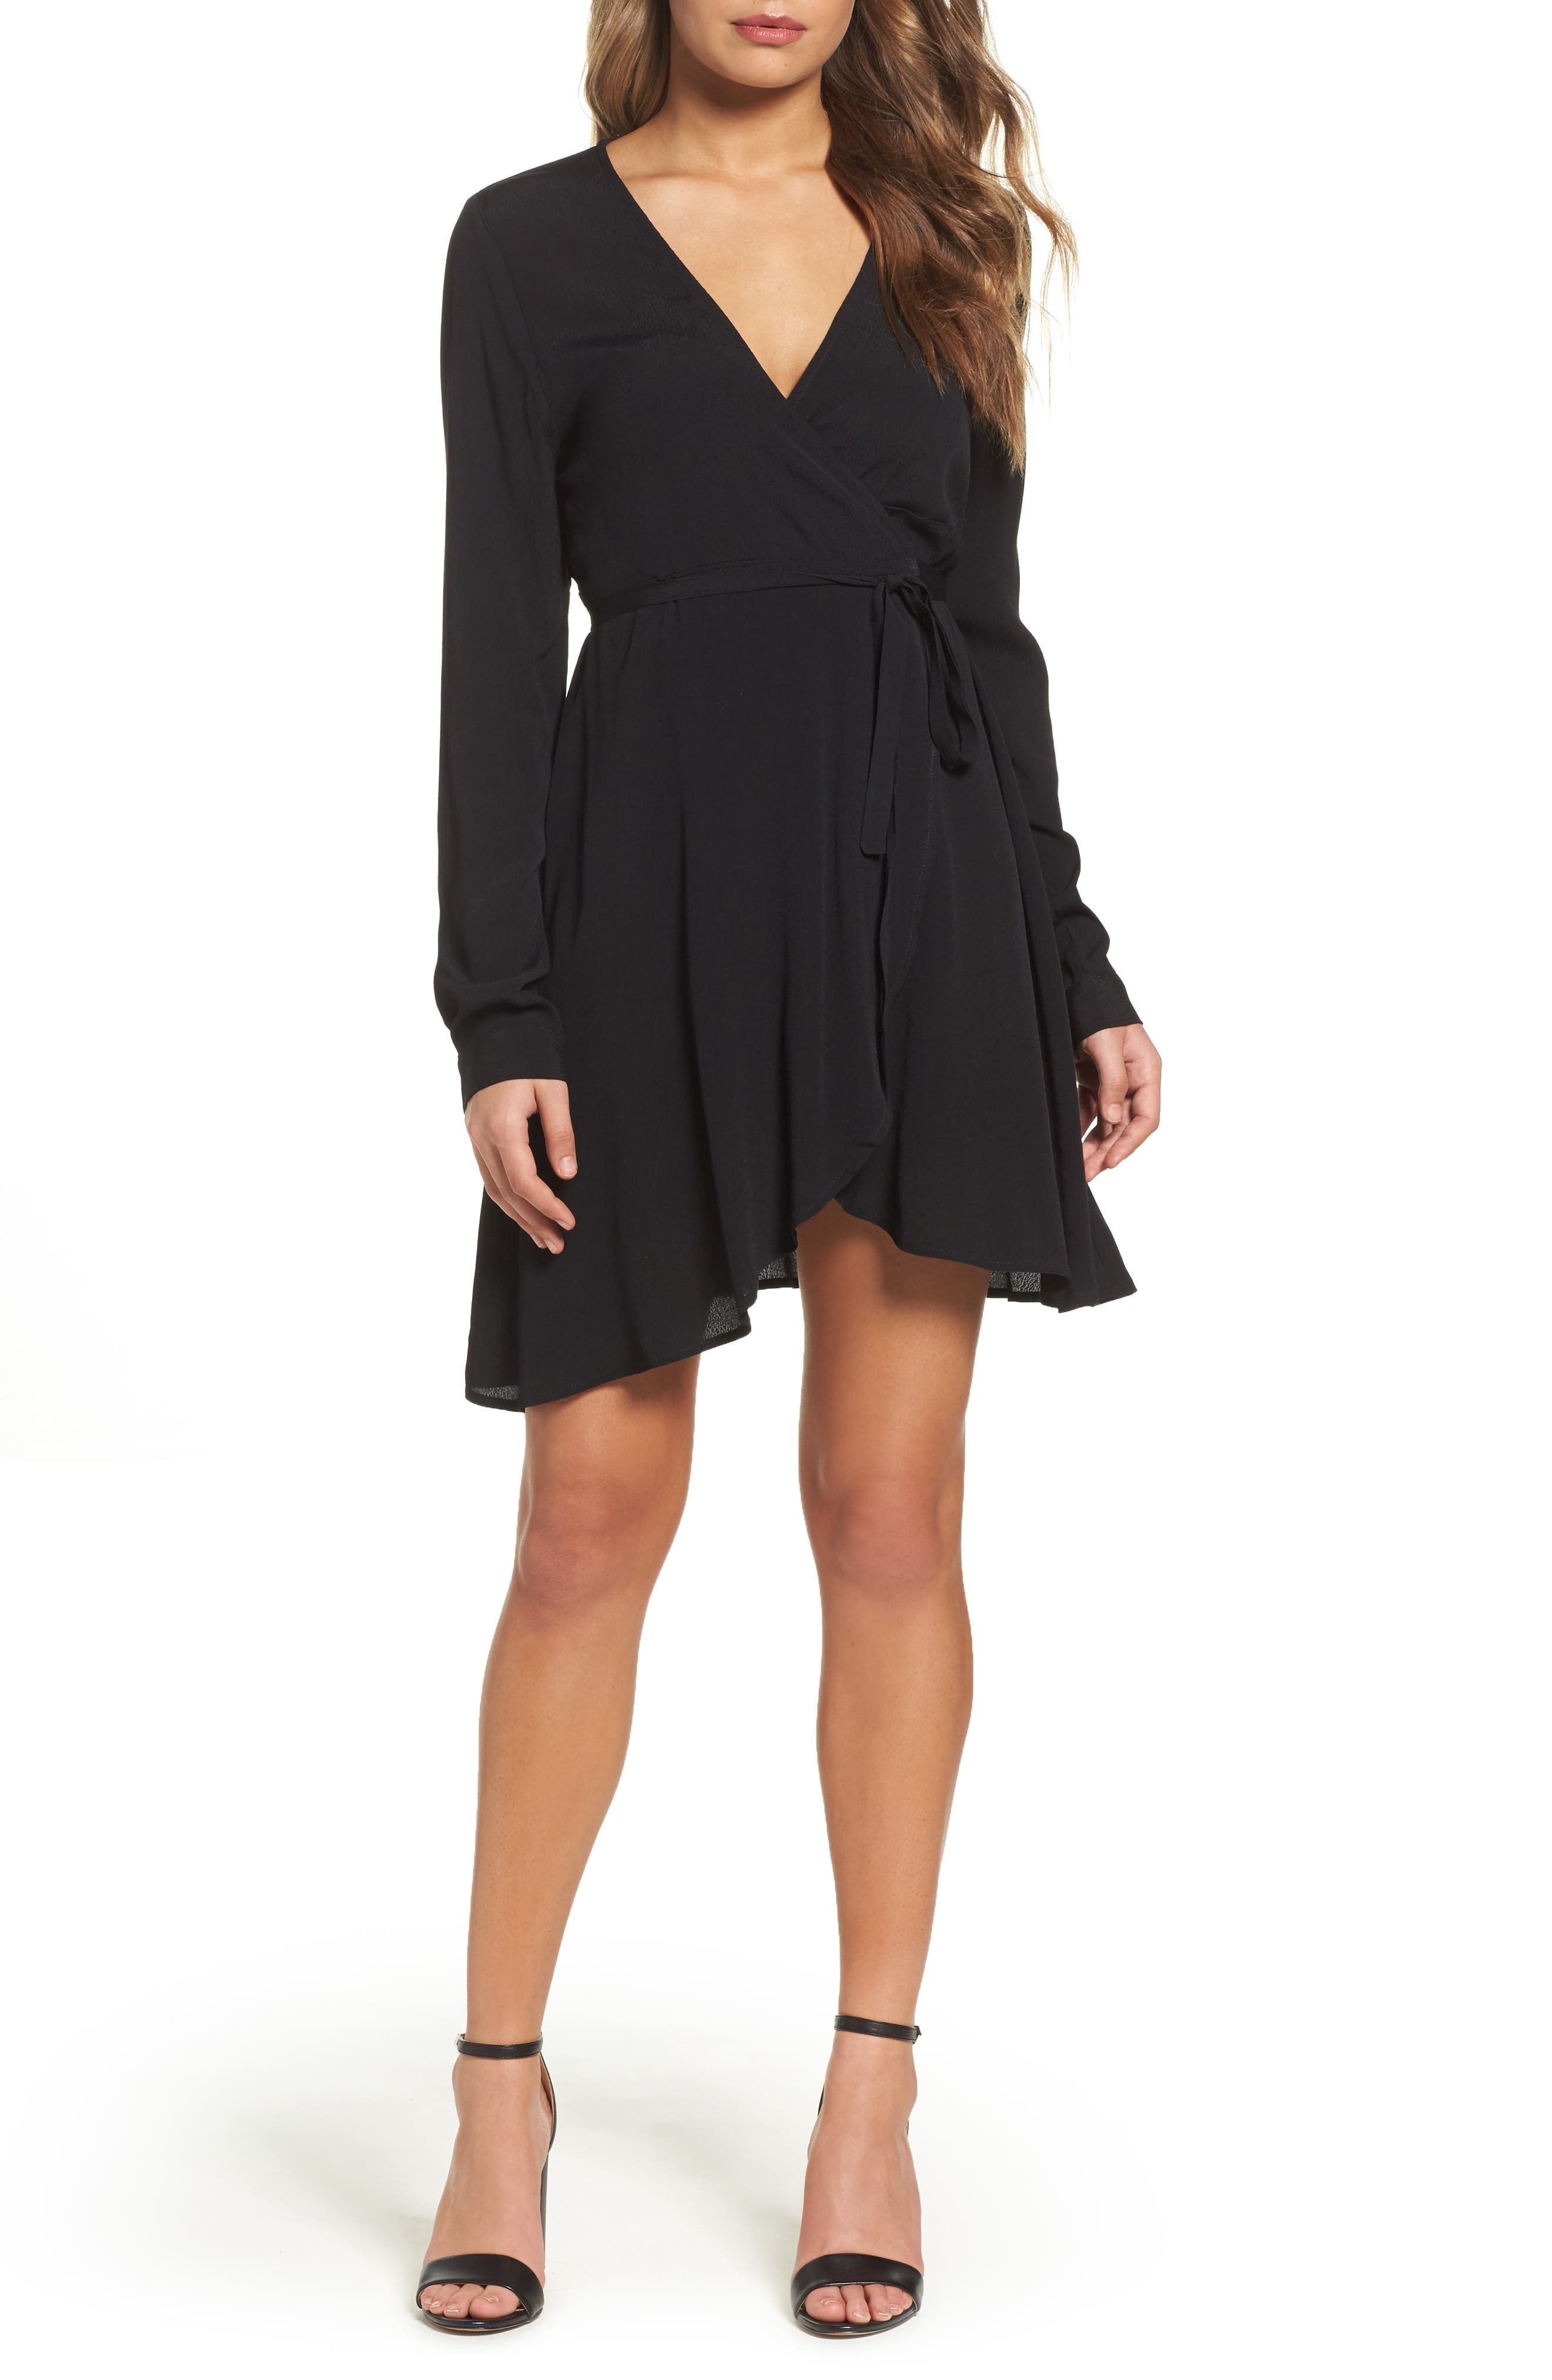 KNOT SISTERS Thorn Wrap Dress